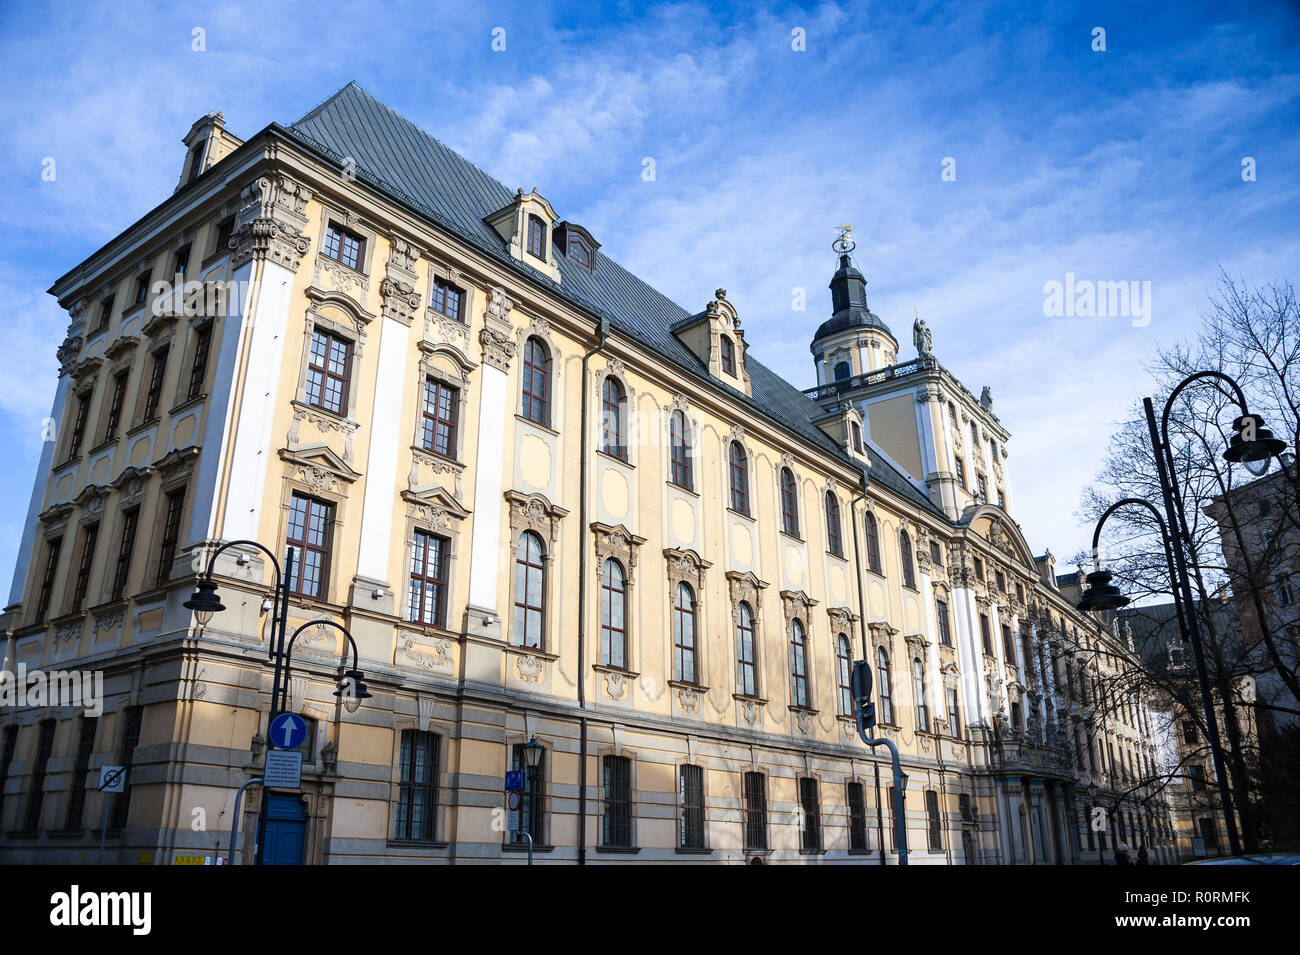 University of Wroclaw, main building, Lower Silesia, Poland.  Magnificent Baroque facade  with blue, cloudy sky background. - Stock Image